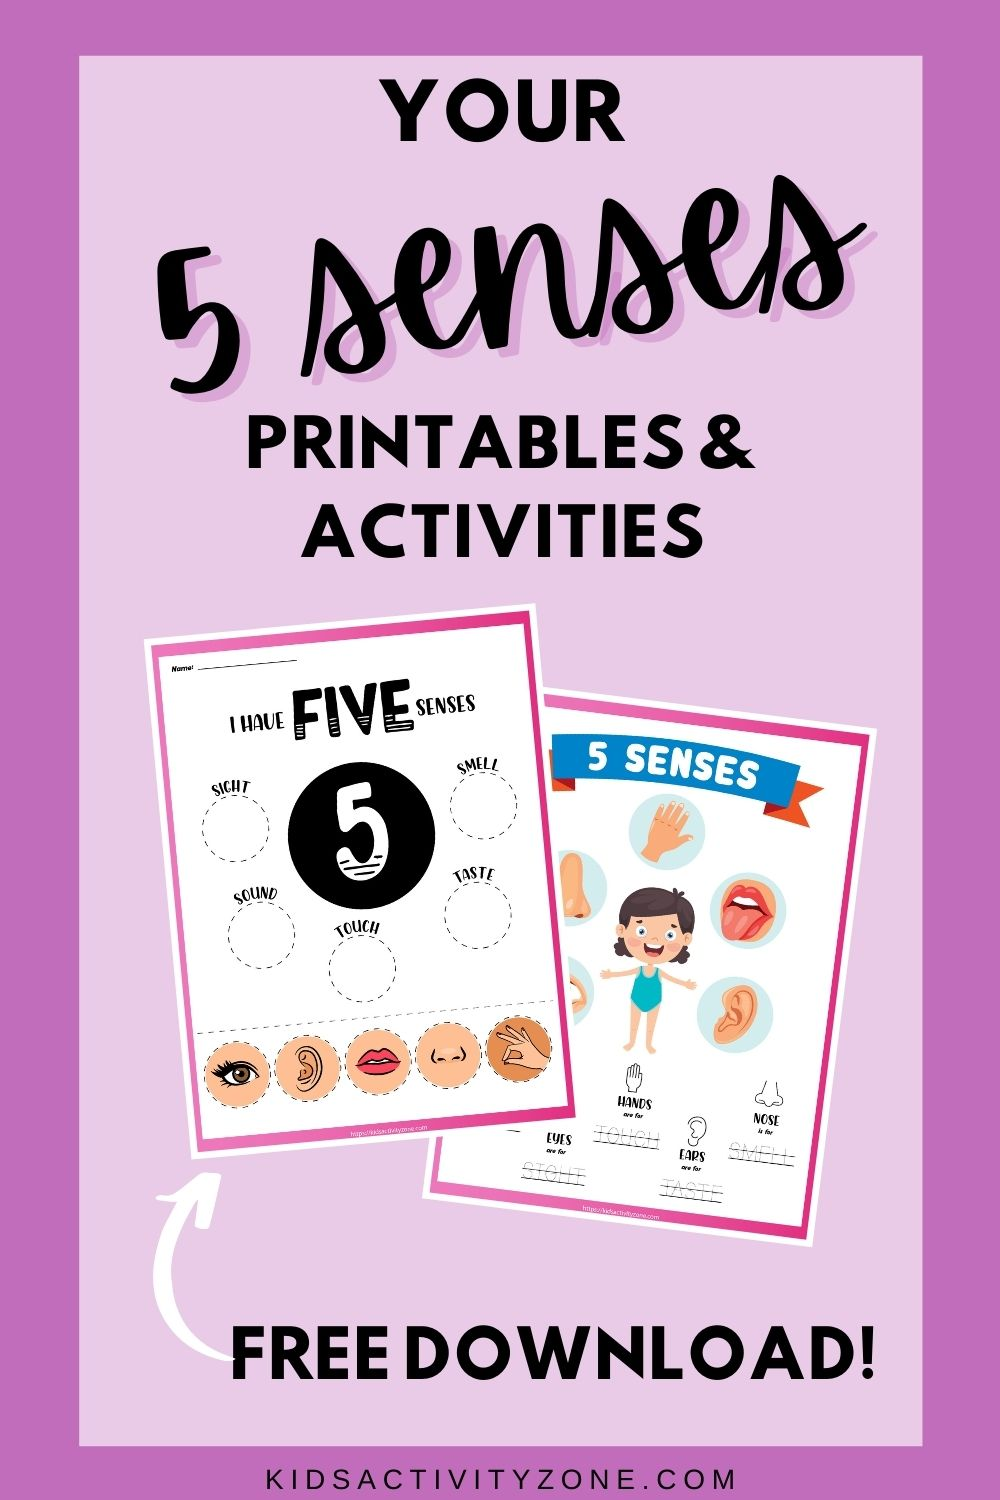 The five sense are one of the first and best resources for preschoolers to learn. They help children explore the world around them and also help make sense of what's around them. Here are some fun activities to pair with learning about your 5 senses! These free printables and activities are perfect for toddlers, preschool aged children and kindergarteners.